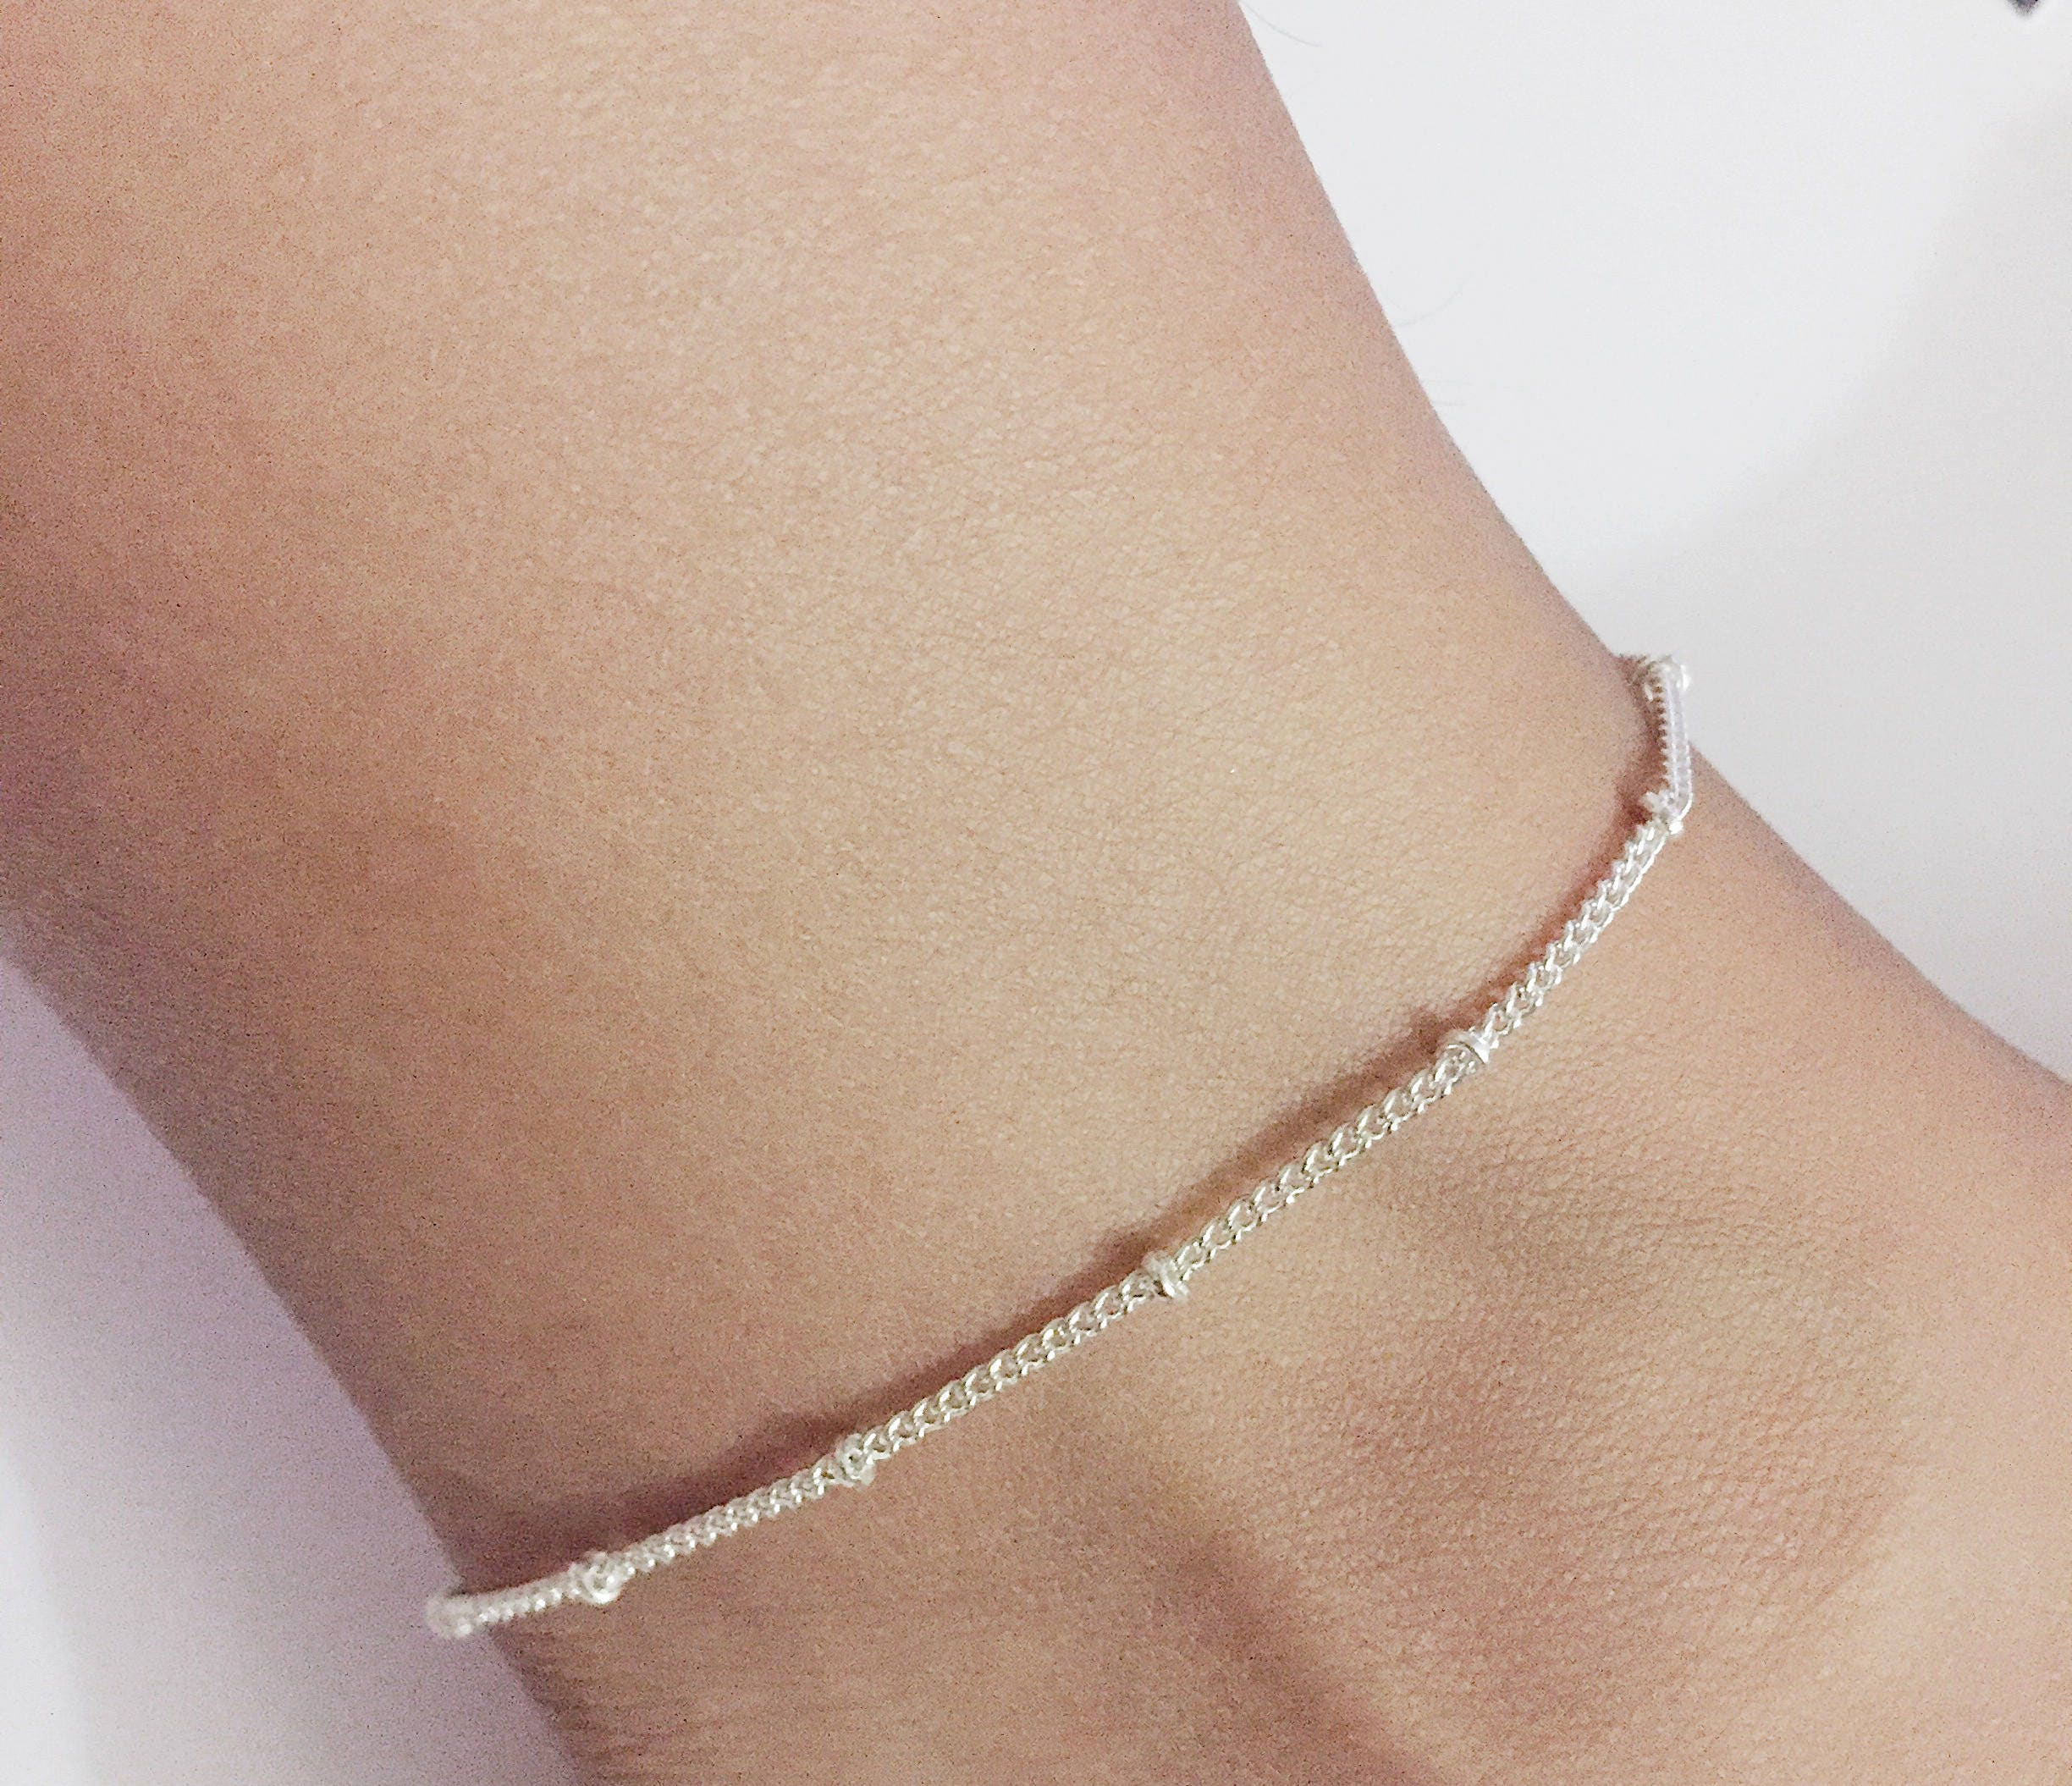 threaded strawberry through necklace rosegold anklet happy rose halskette silber kugelkette thread solid sterling silver anhaenger en cream short statement gold ladies chain gravur plated aufgefaedelt